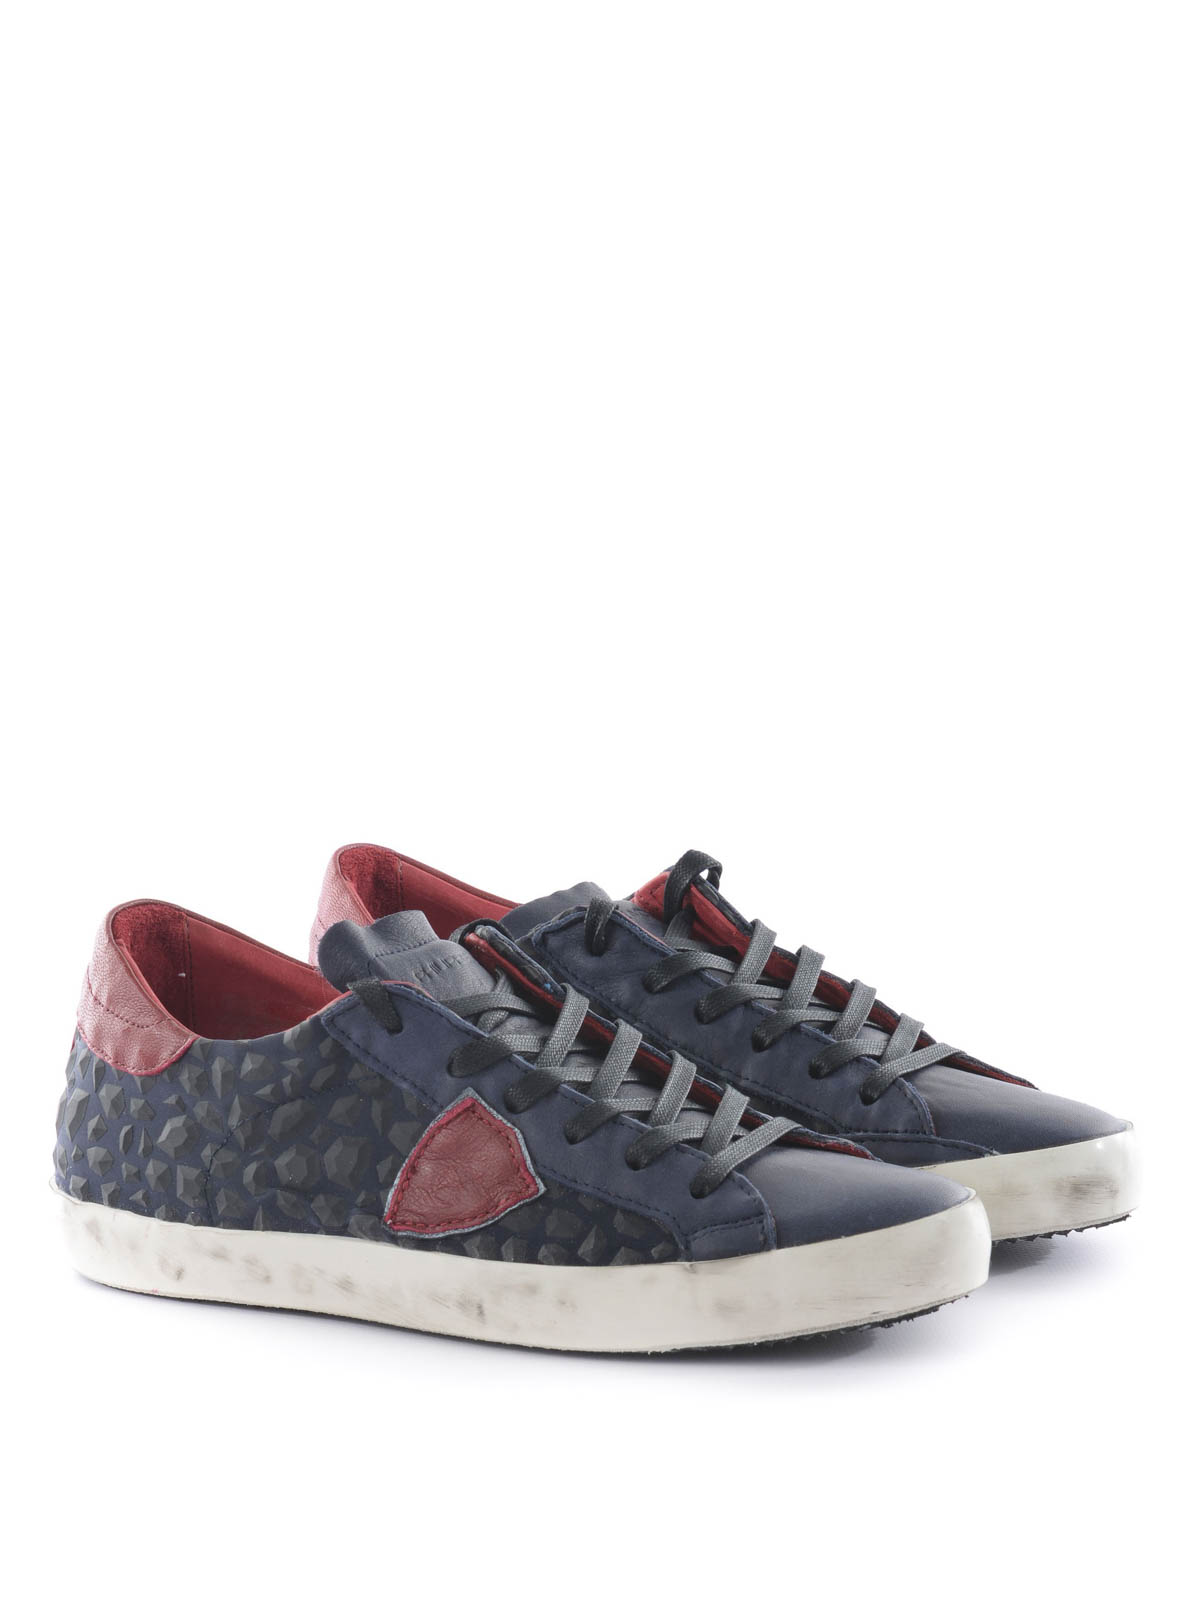 low top leather sneakers by philippe model trainers ikrix. Black Bedroom Furniture Sets. Home Design Ideas